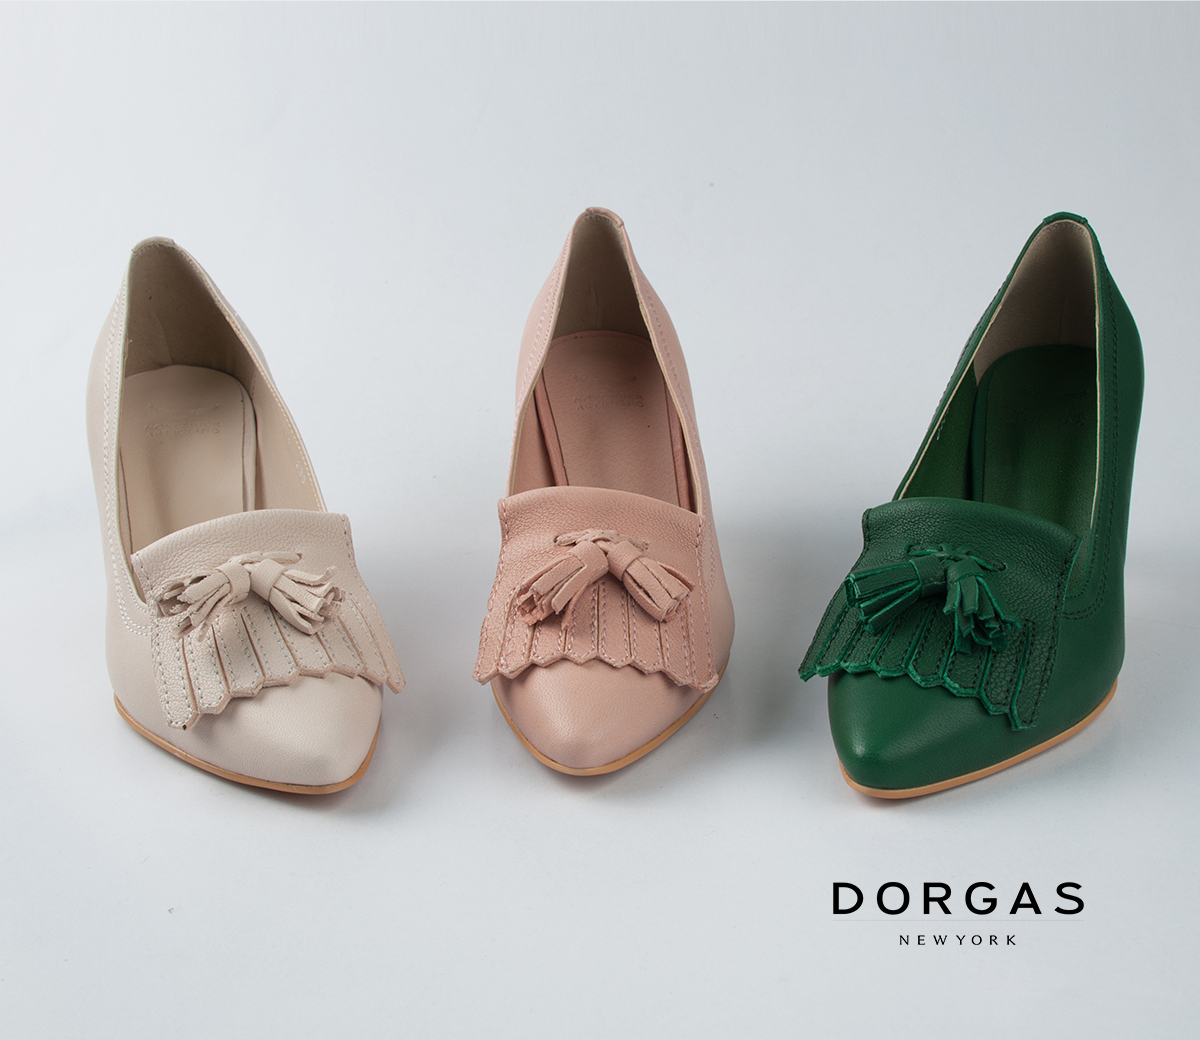 DN0114 shoes